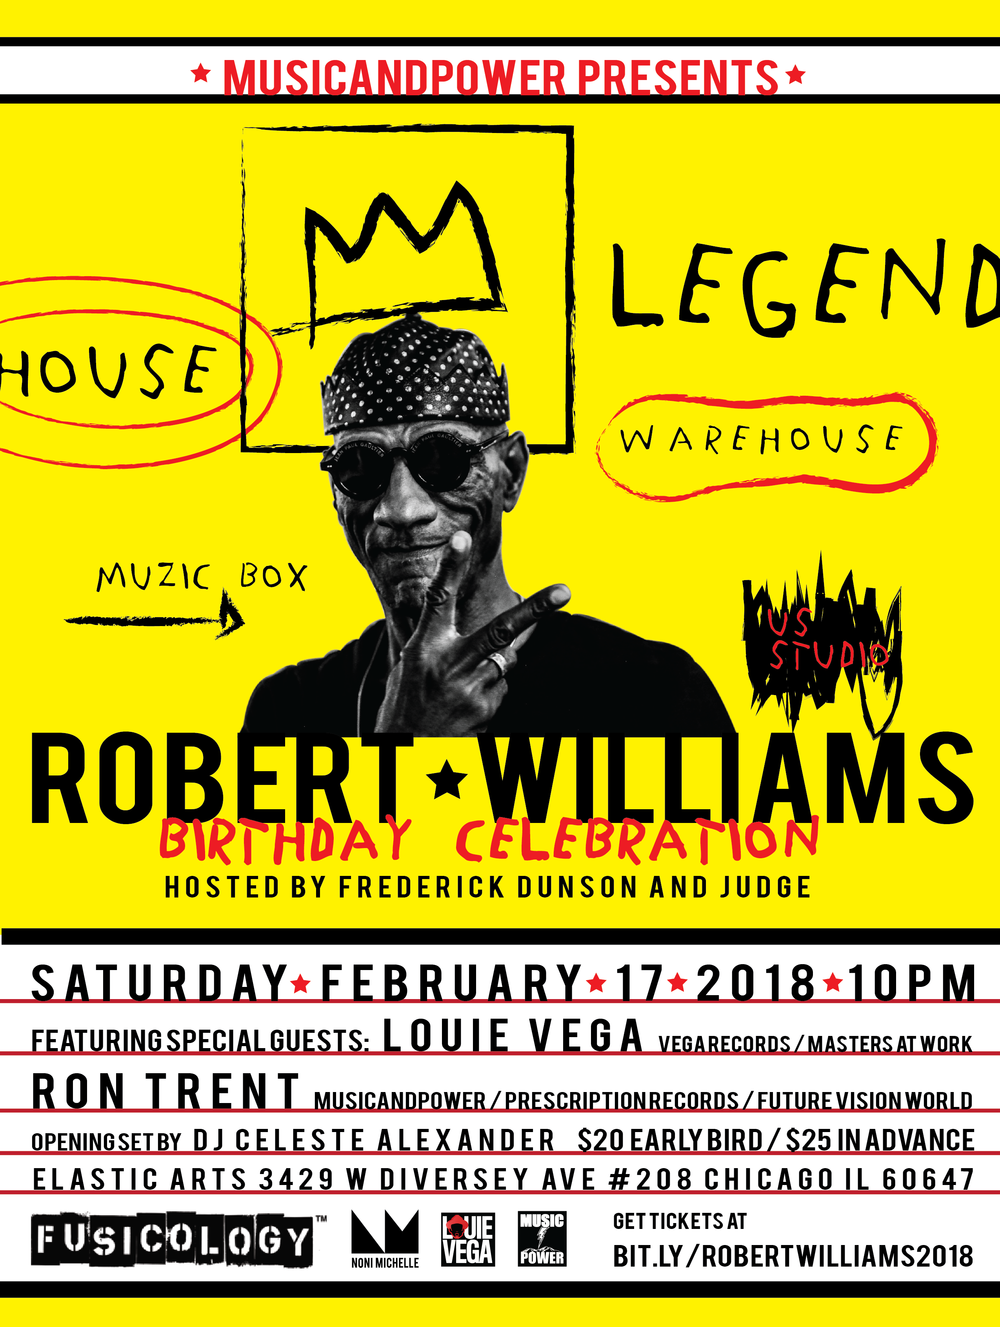 Robert Williams Birthday Celebration 2018 Featuring Louie Vega and Ron Trent Elastic Arts Flyer